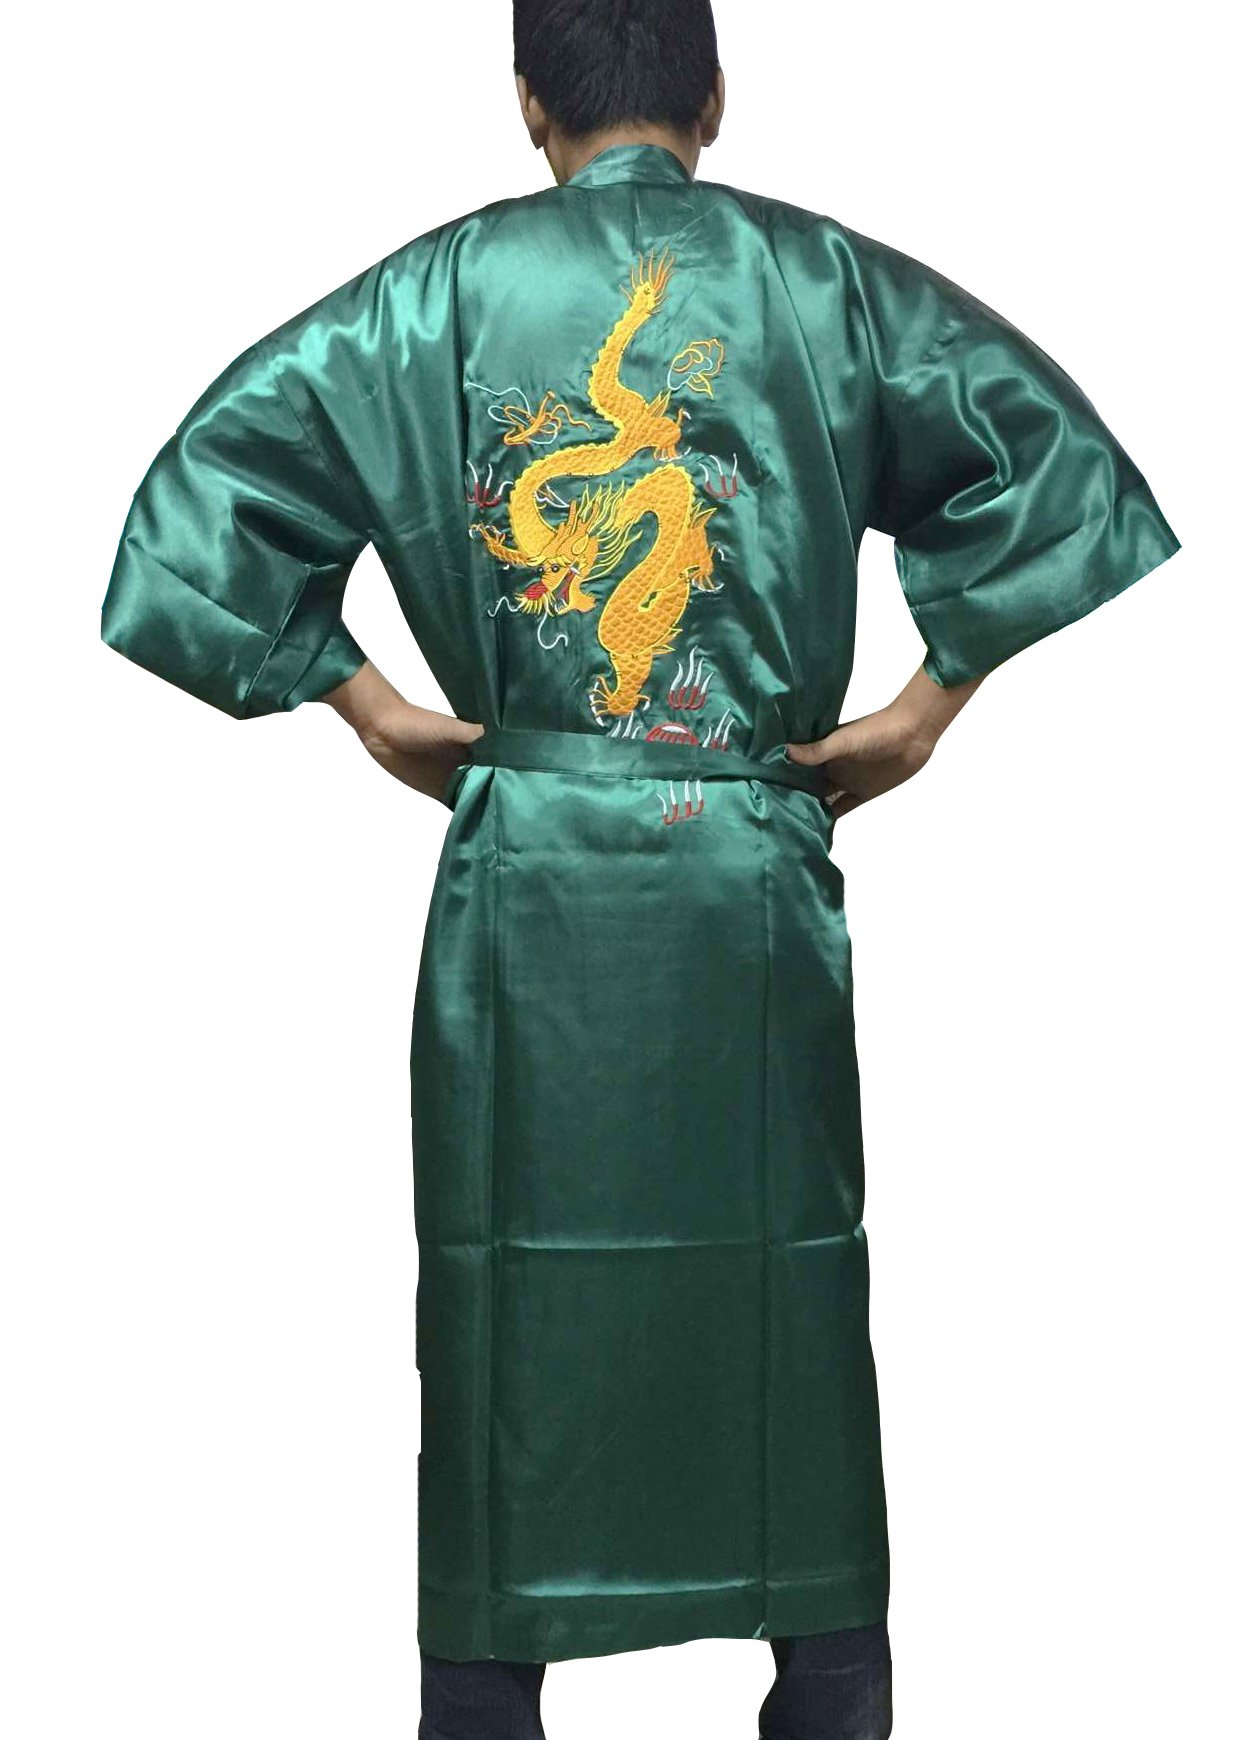 YueLian Men's Long Satin Chinese Dragon Embroidery Robe Kimono Bathrobe Sleepwear Green by YueLian